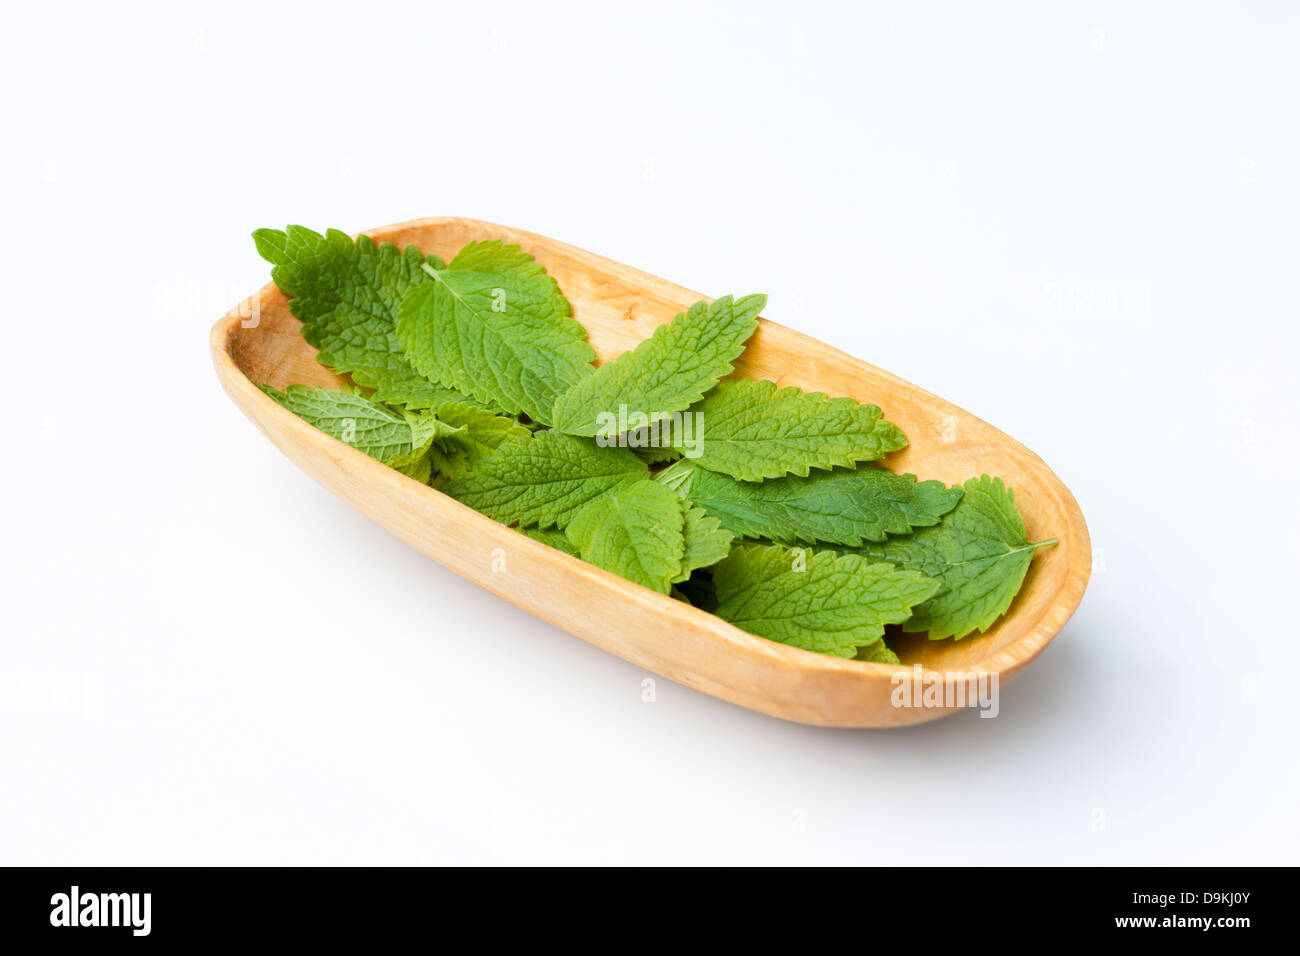 Lemon Balm (Melissa officinalis) Leaves Collected in a Wooden Bowl Stock Photo